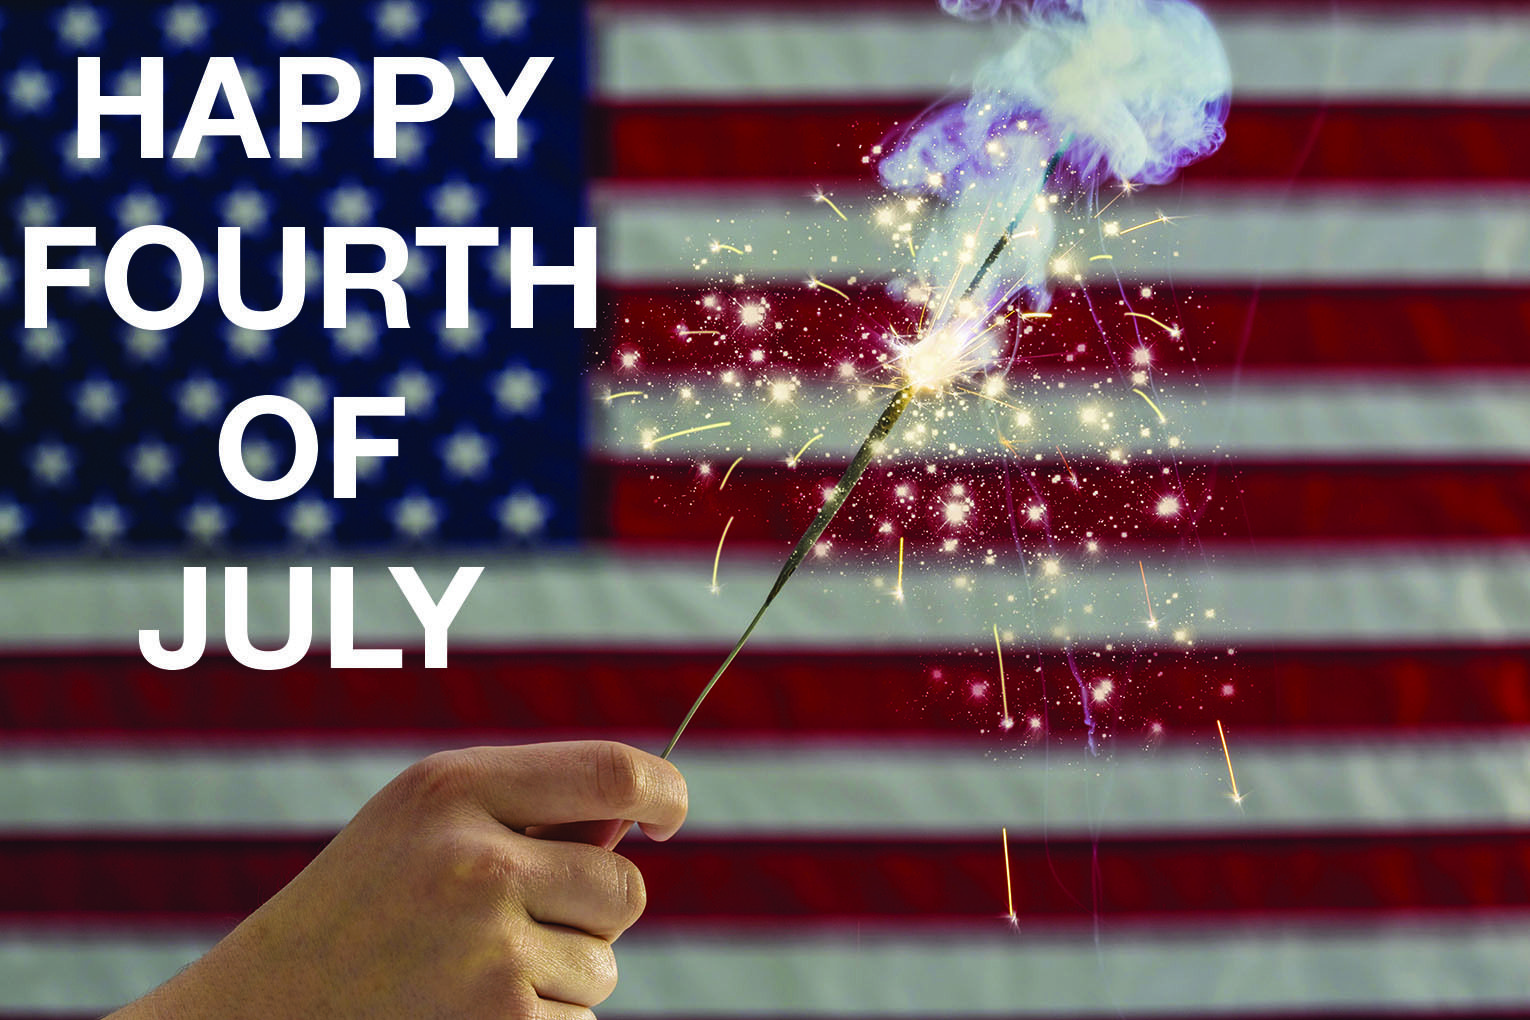 Happy 4th of July from American Grand!